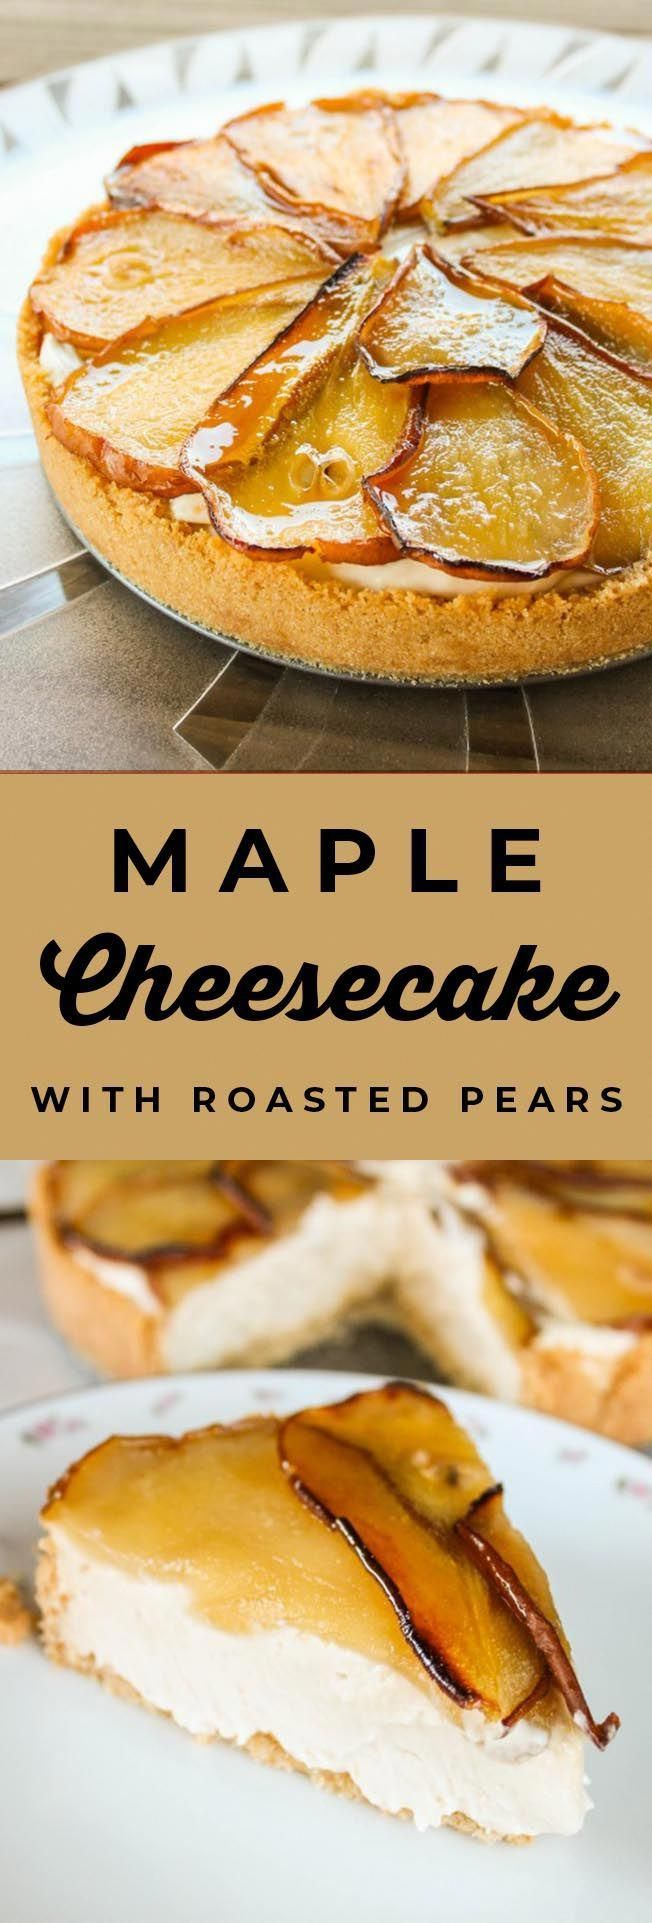 Maple Cheesecake with Roasted Pears from The Food Charlatan. This No Bake Maple Cheesecake with Roasted Pears is one of my favorite cheesecakes! It is so easy to make but feels super fancy. It is the perfect fall dessert for Thanksgiving, Christmas, or New Year's Eve! The maple and pear flavors were made for each other. #nobake #cheesecake #maple #pears #roasted #easy #recipe #dessert #creamcheese #cheesecakedessertseasy